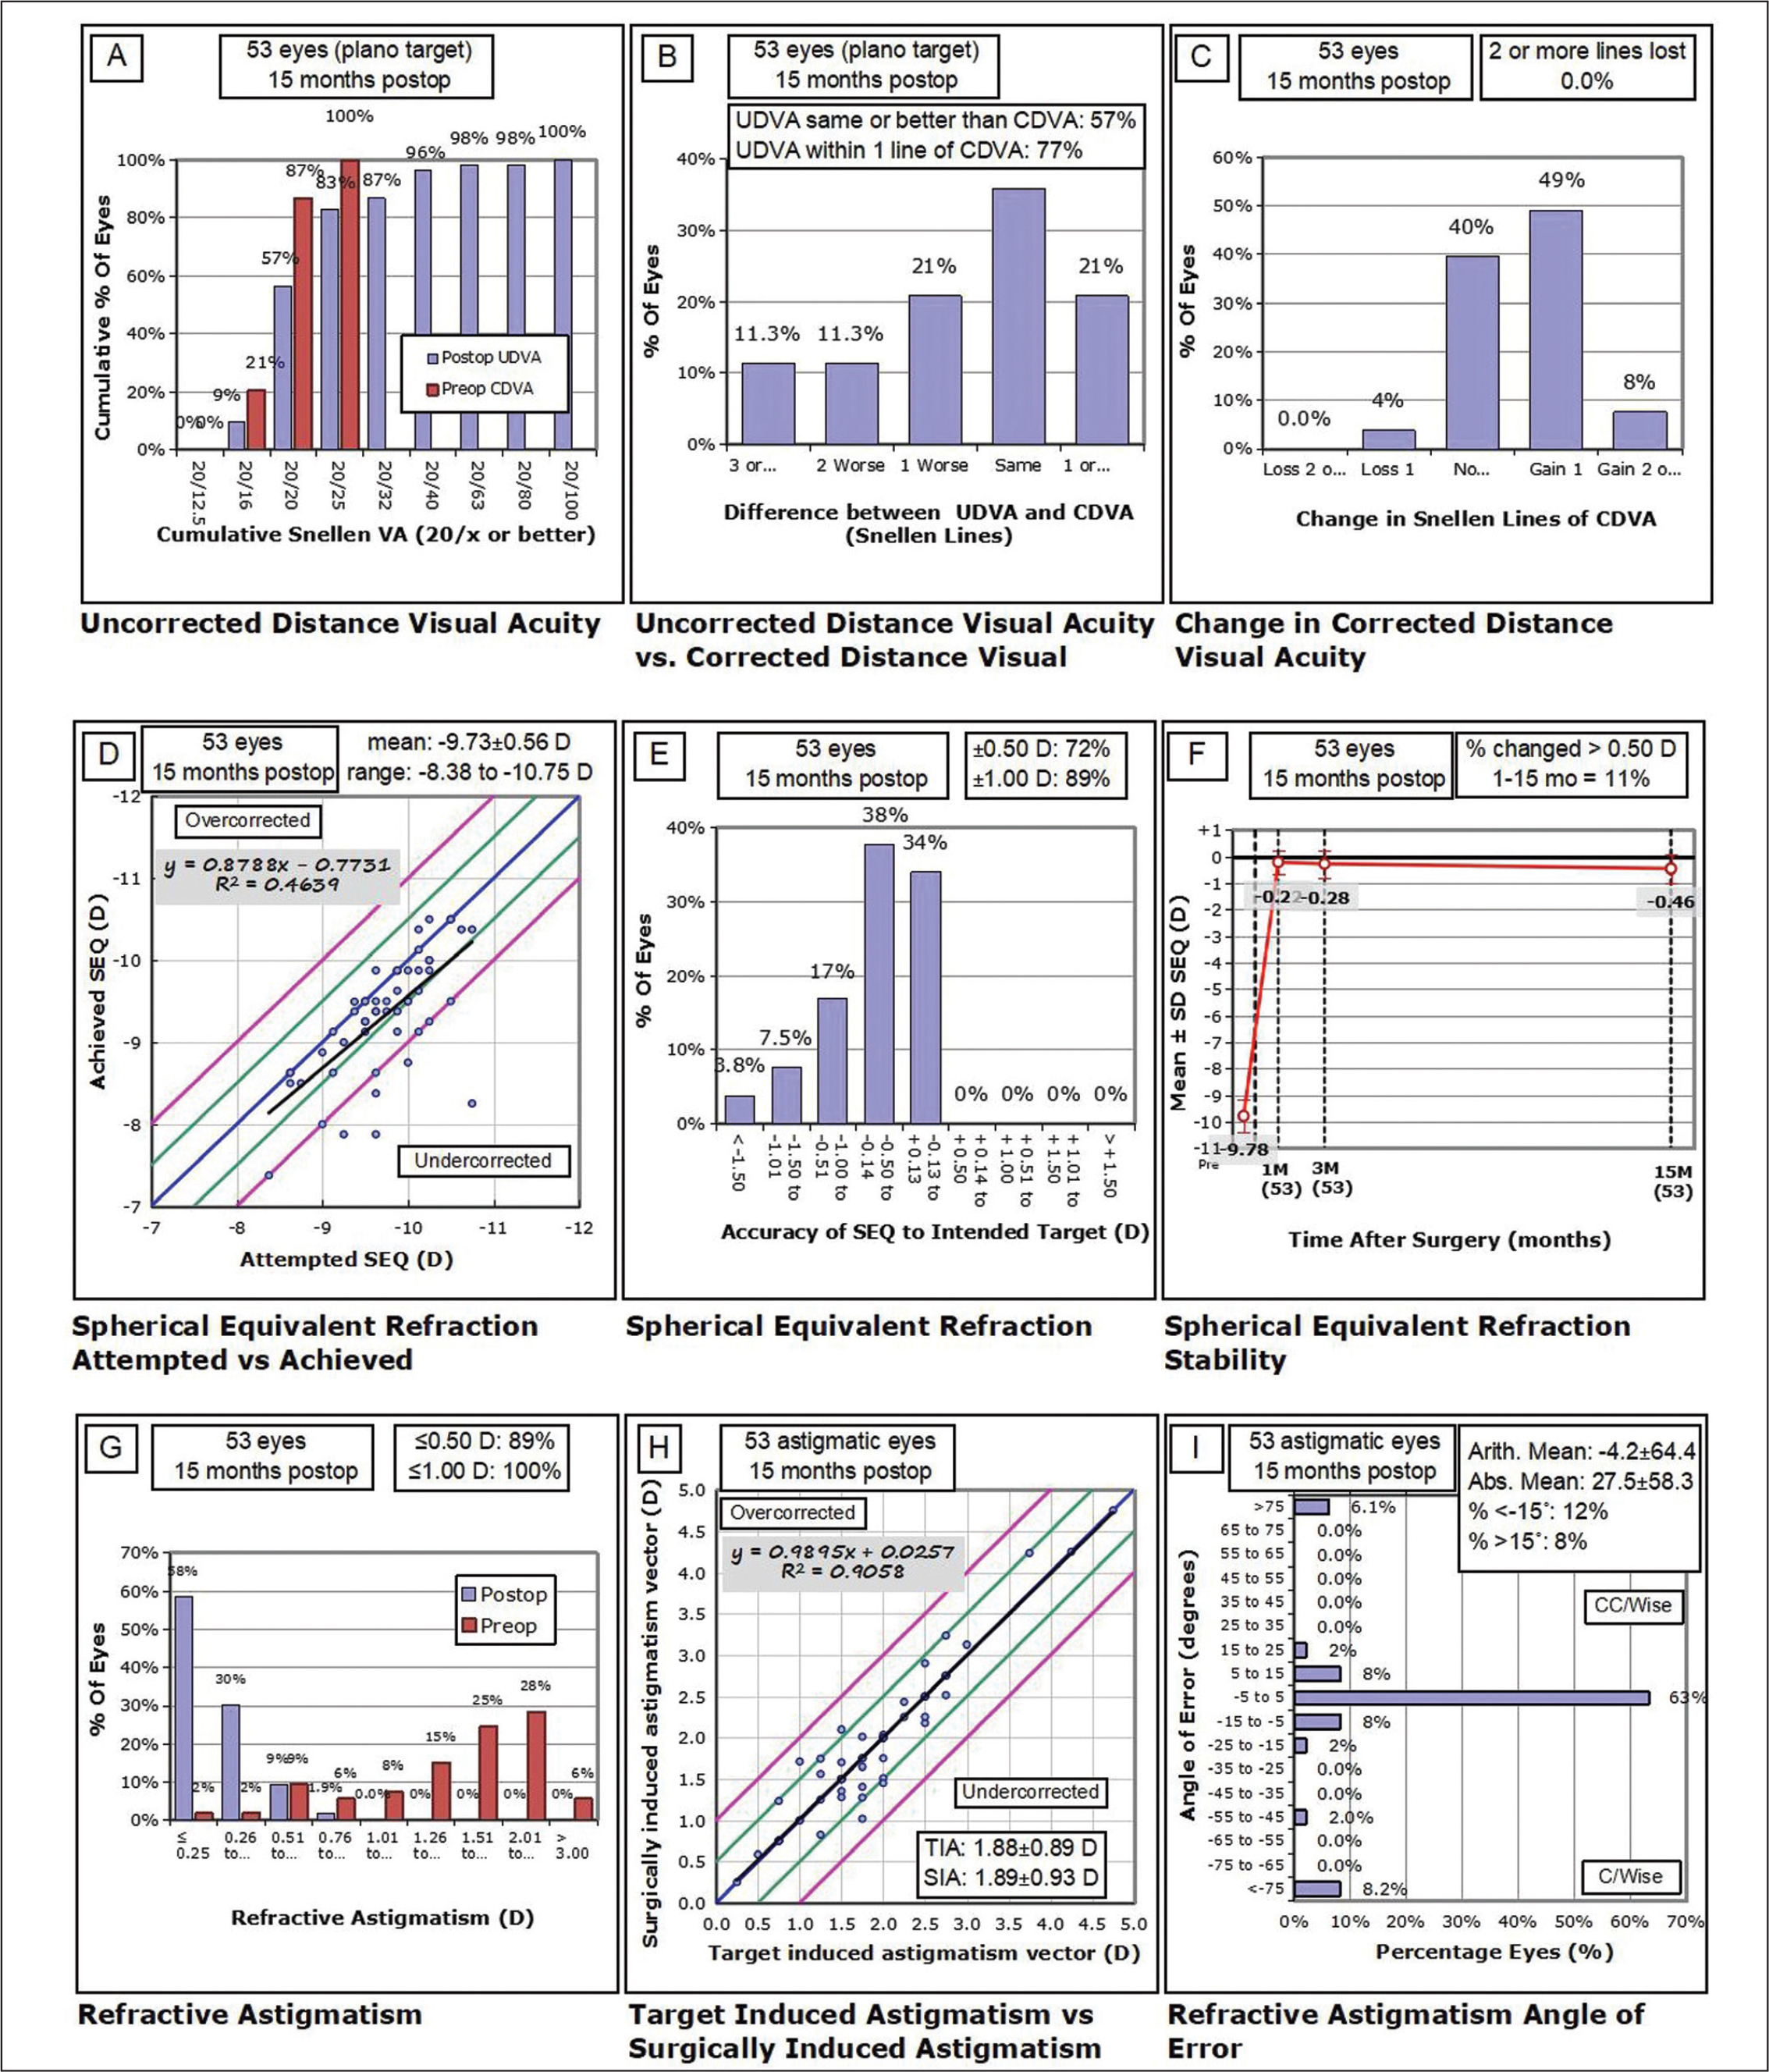 Nine standard graphs for reporting refractive surgery showing the visual and refractive outcomes for 53 eyes at 15 months after SMILE. SMILE = small incision lenticule extraction; UDVA = uncorrected distance visual acuity; CDVA = corrected distance visual acuity; D = diopters; Postop = postoperative; Preop = preoperative; SEQ = spherical equivalent refraction; TIA = target induced astigmatism; SIA = surgically induced astigmatism